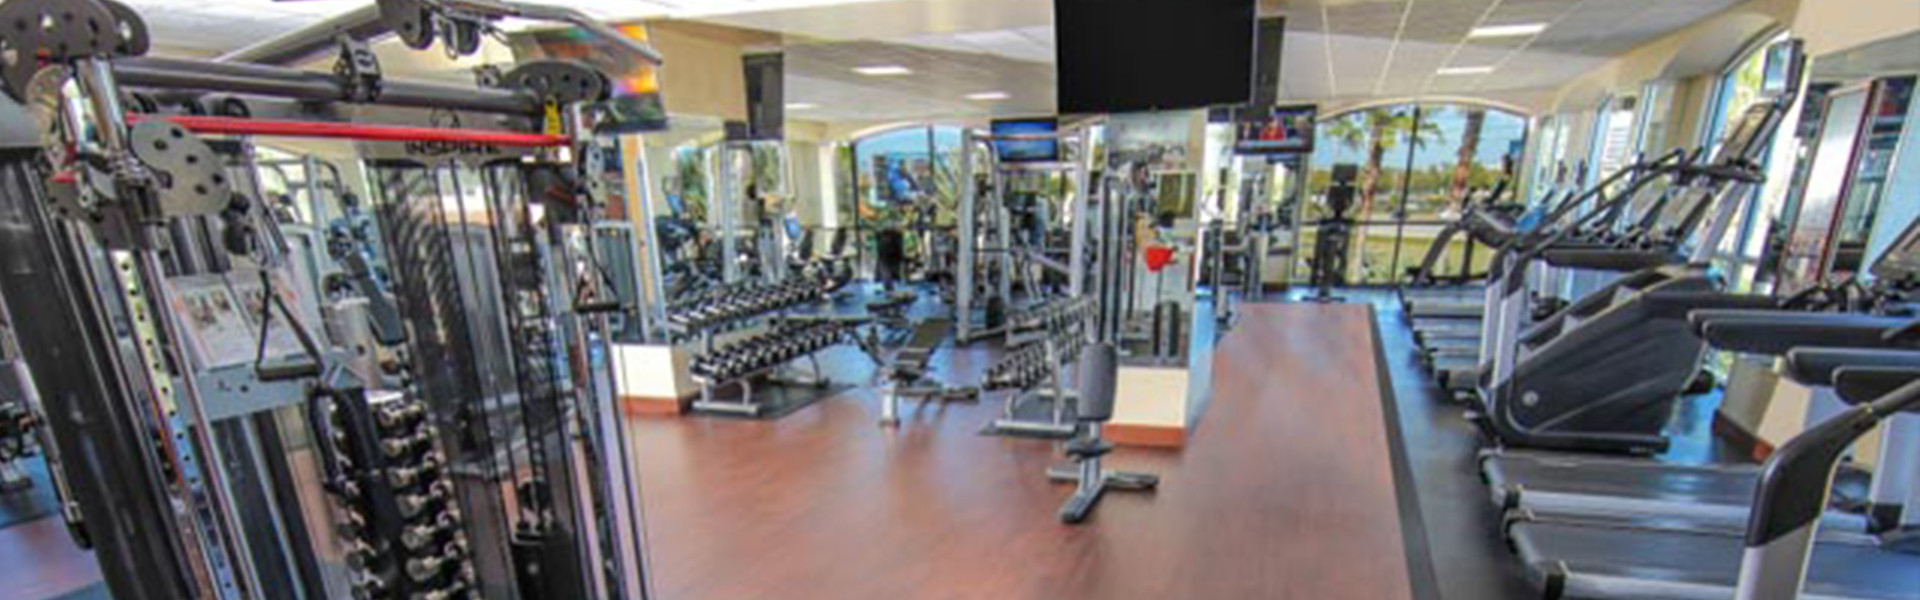 Orlando Hotel Fitness Center | Workout Room